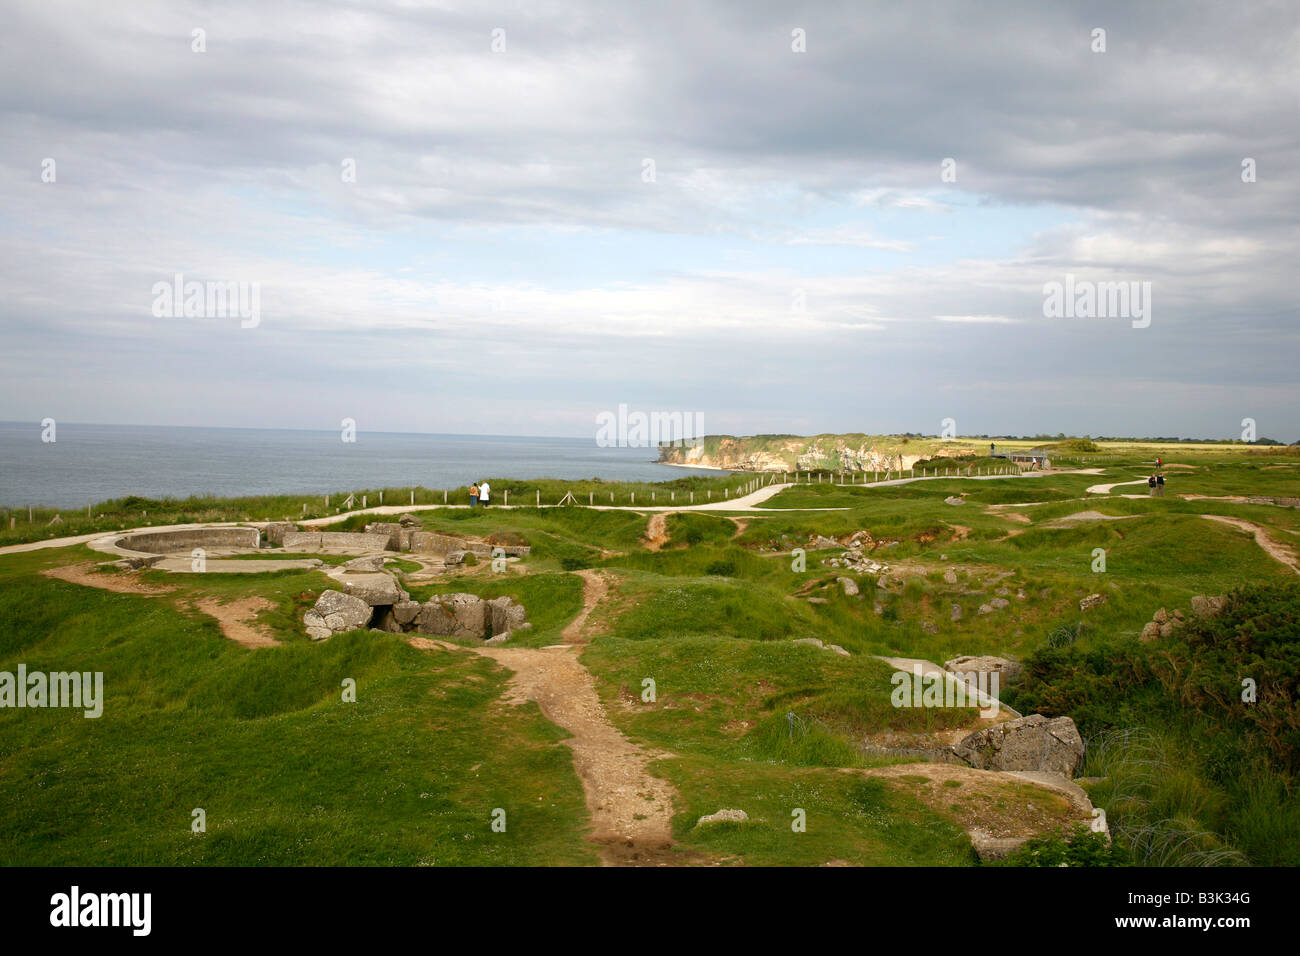 July 2008 - Pointe du Hoc D day beach Normandy France - Stock Image